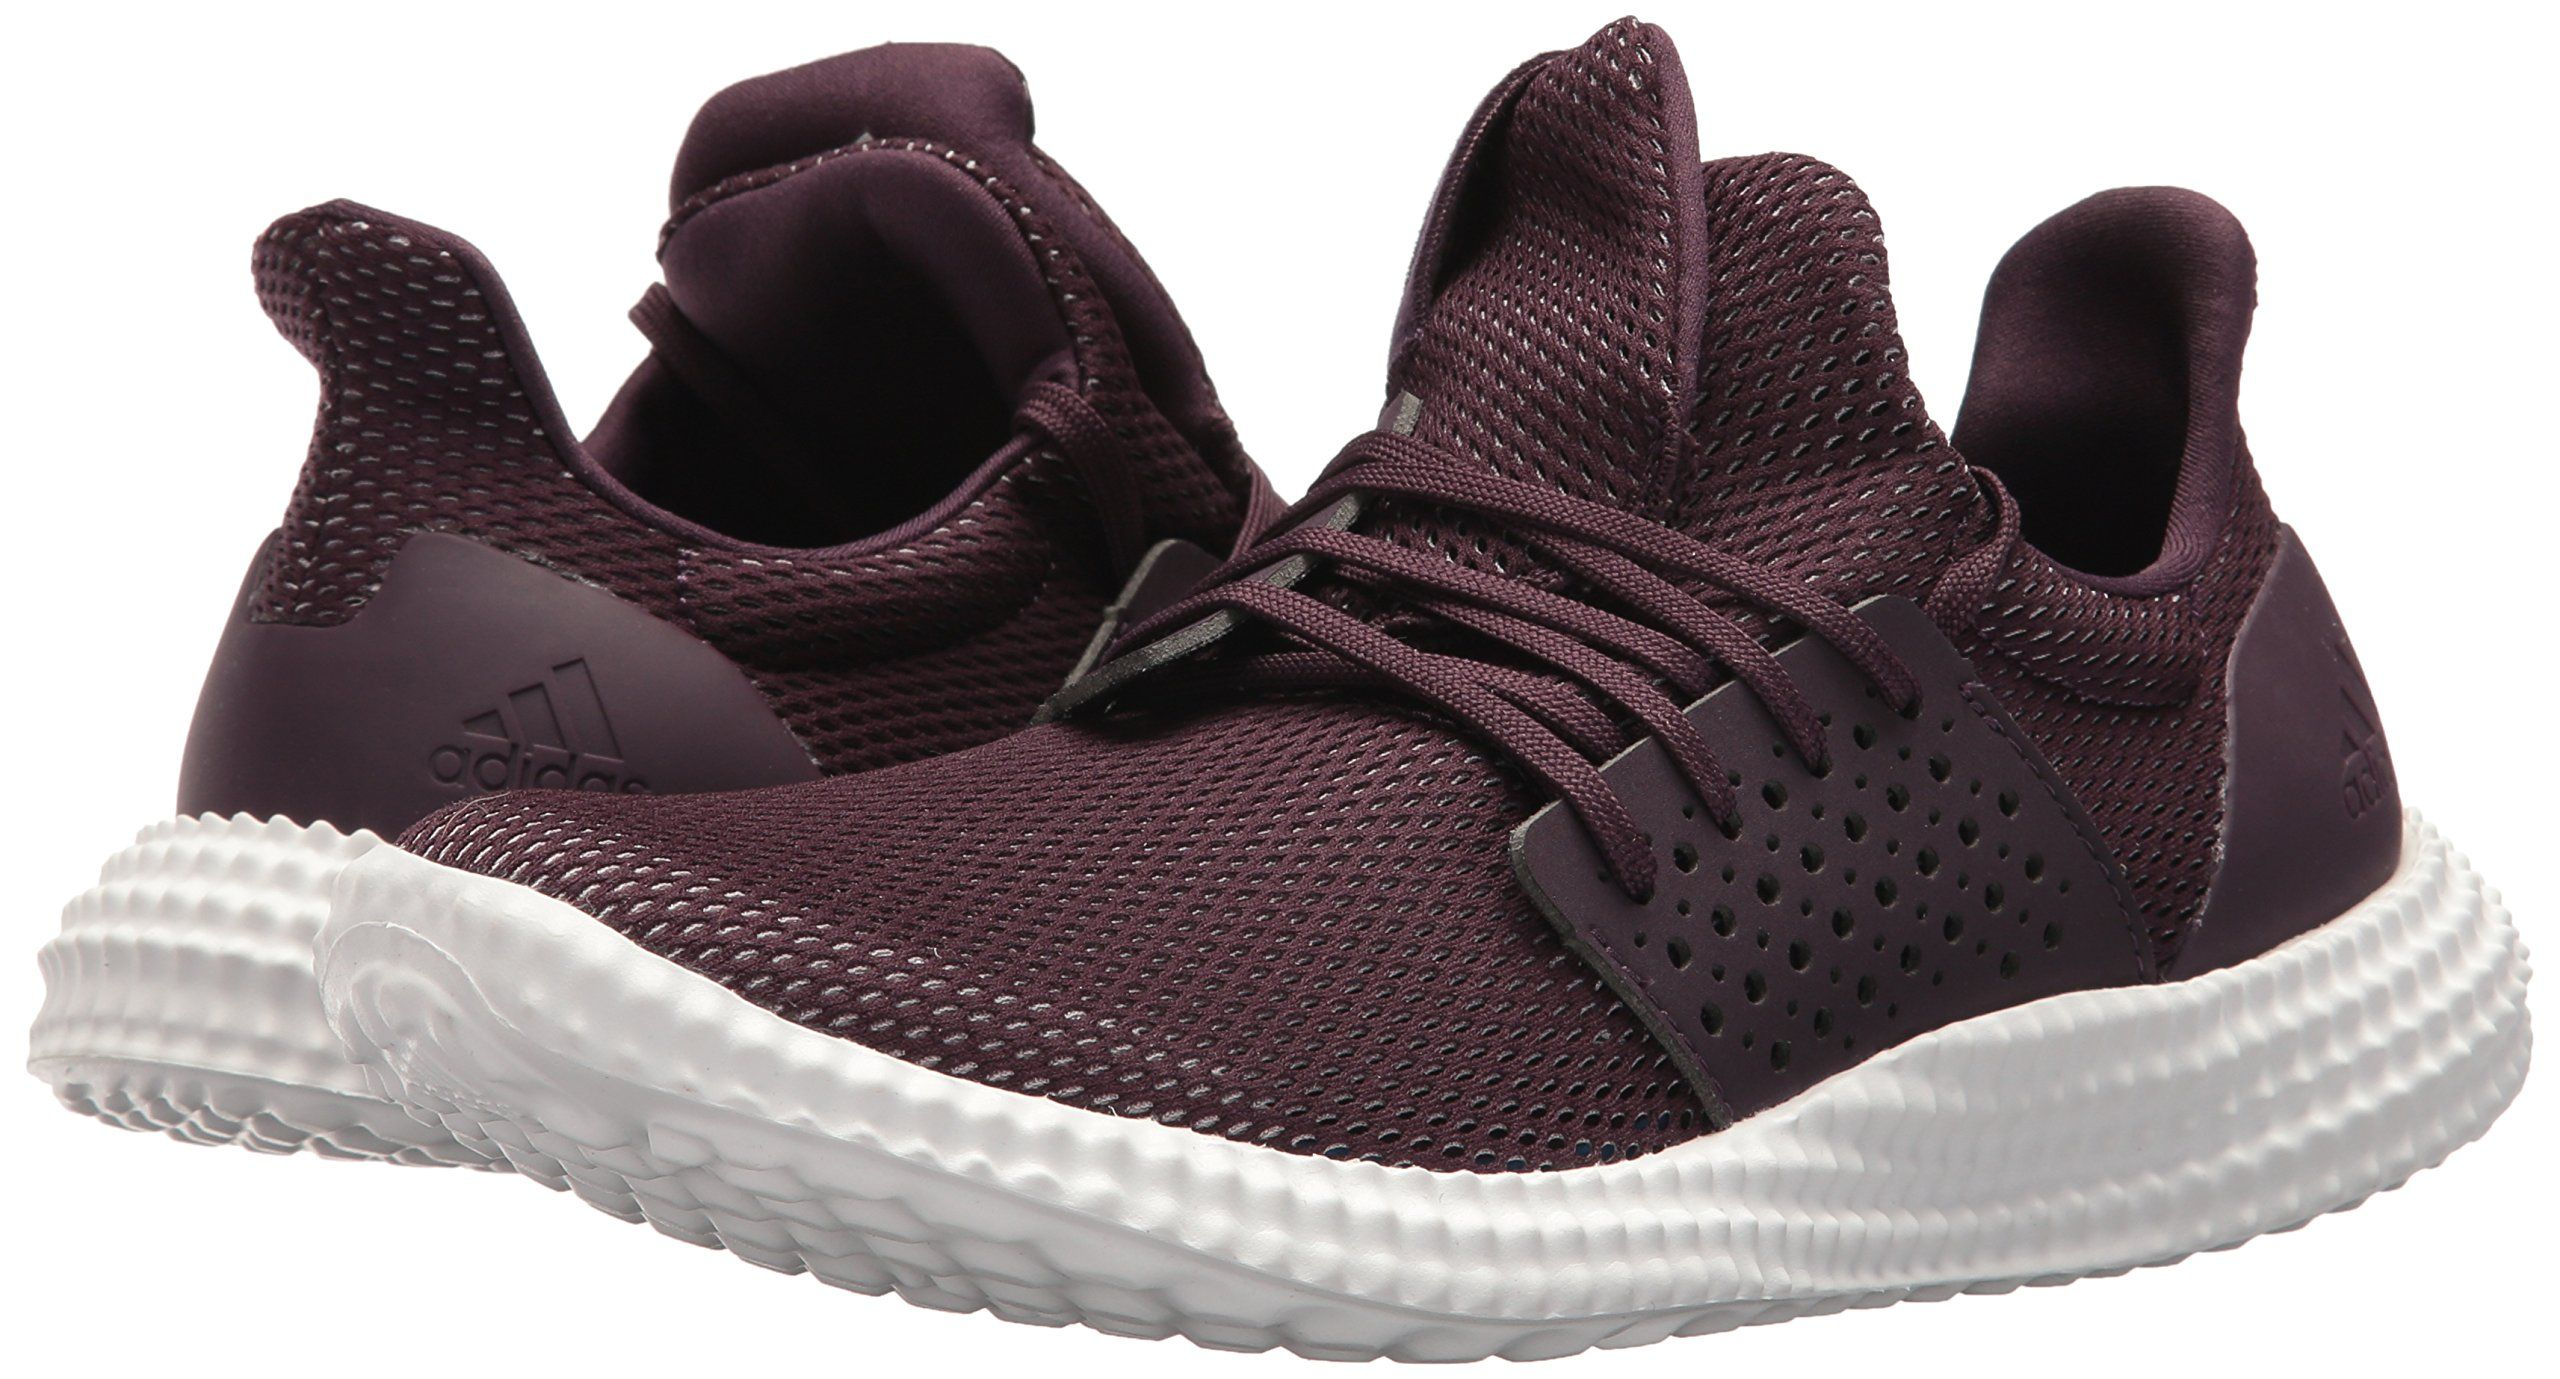 Adidas Athletics 24 7 Tr M Noble Red Noble Red Crystal White 9 M